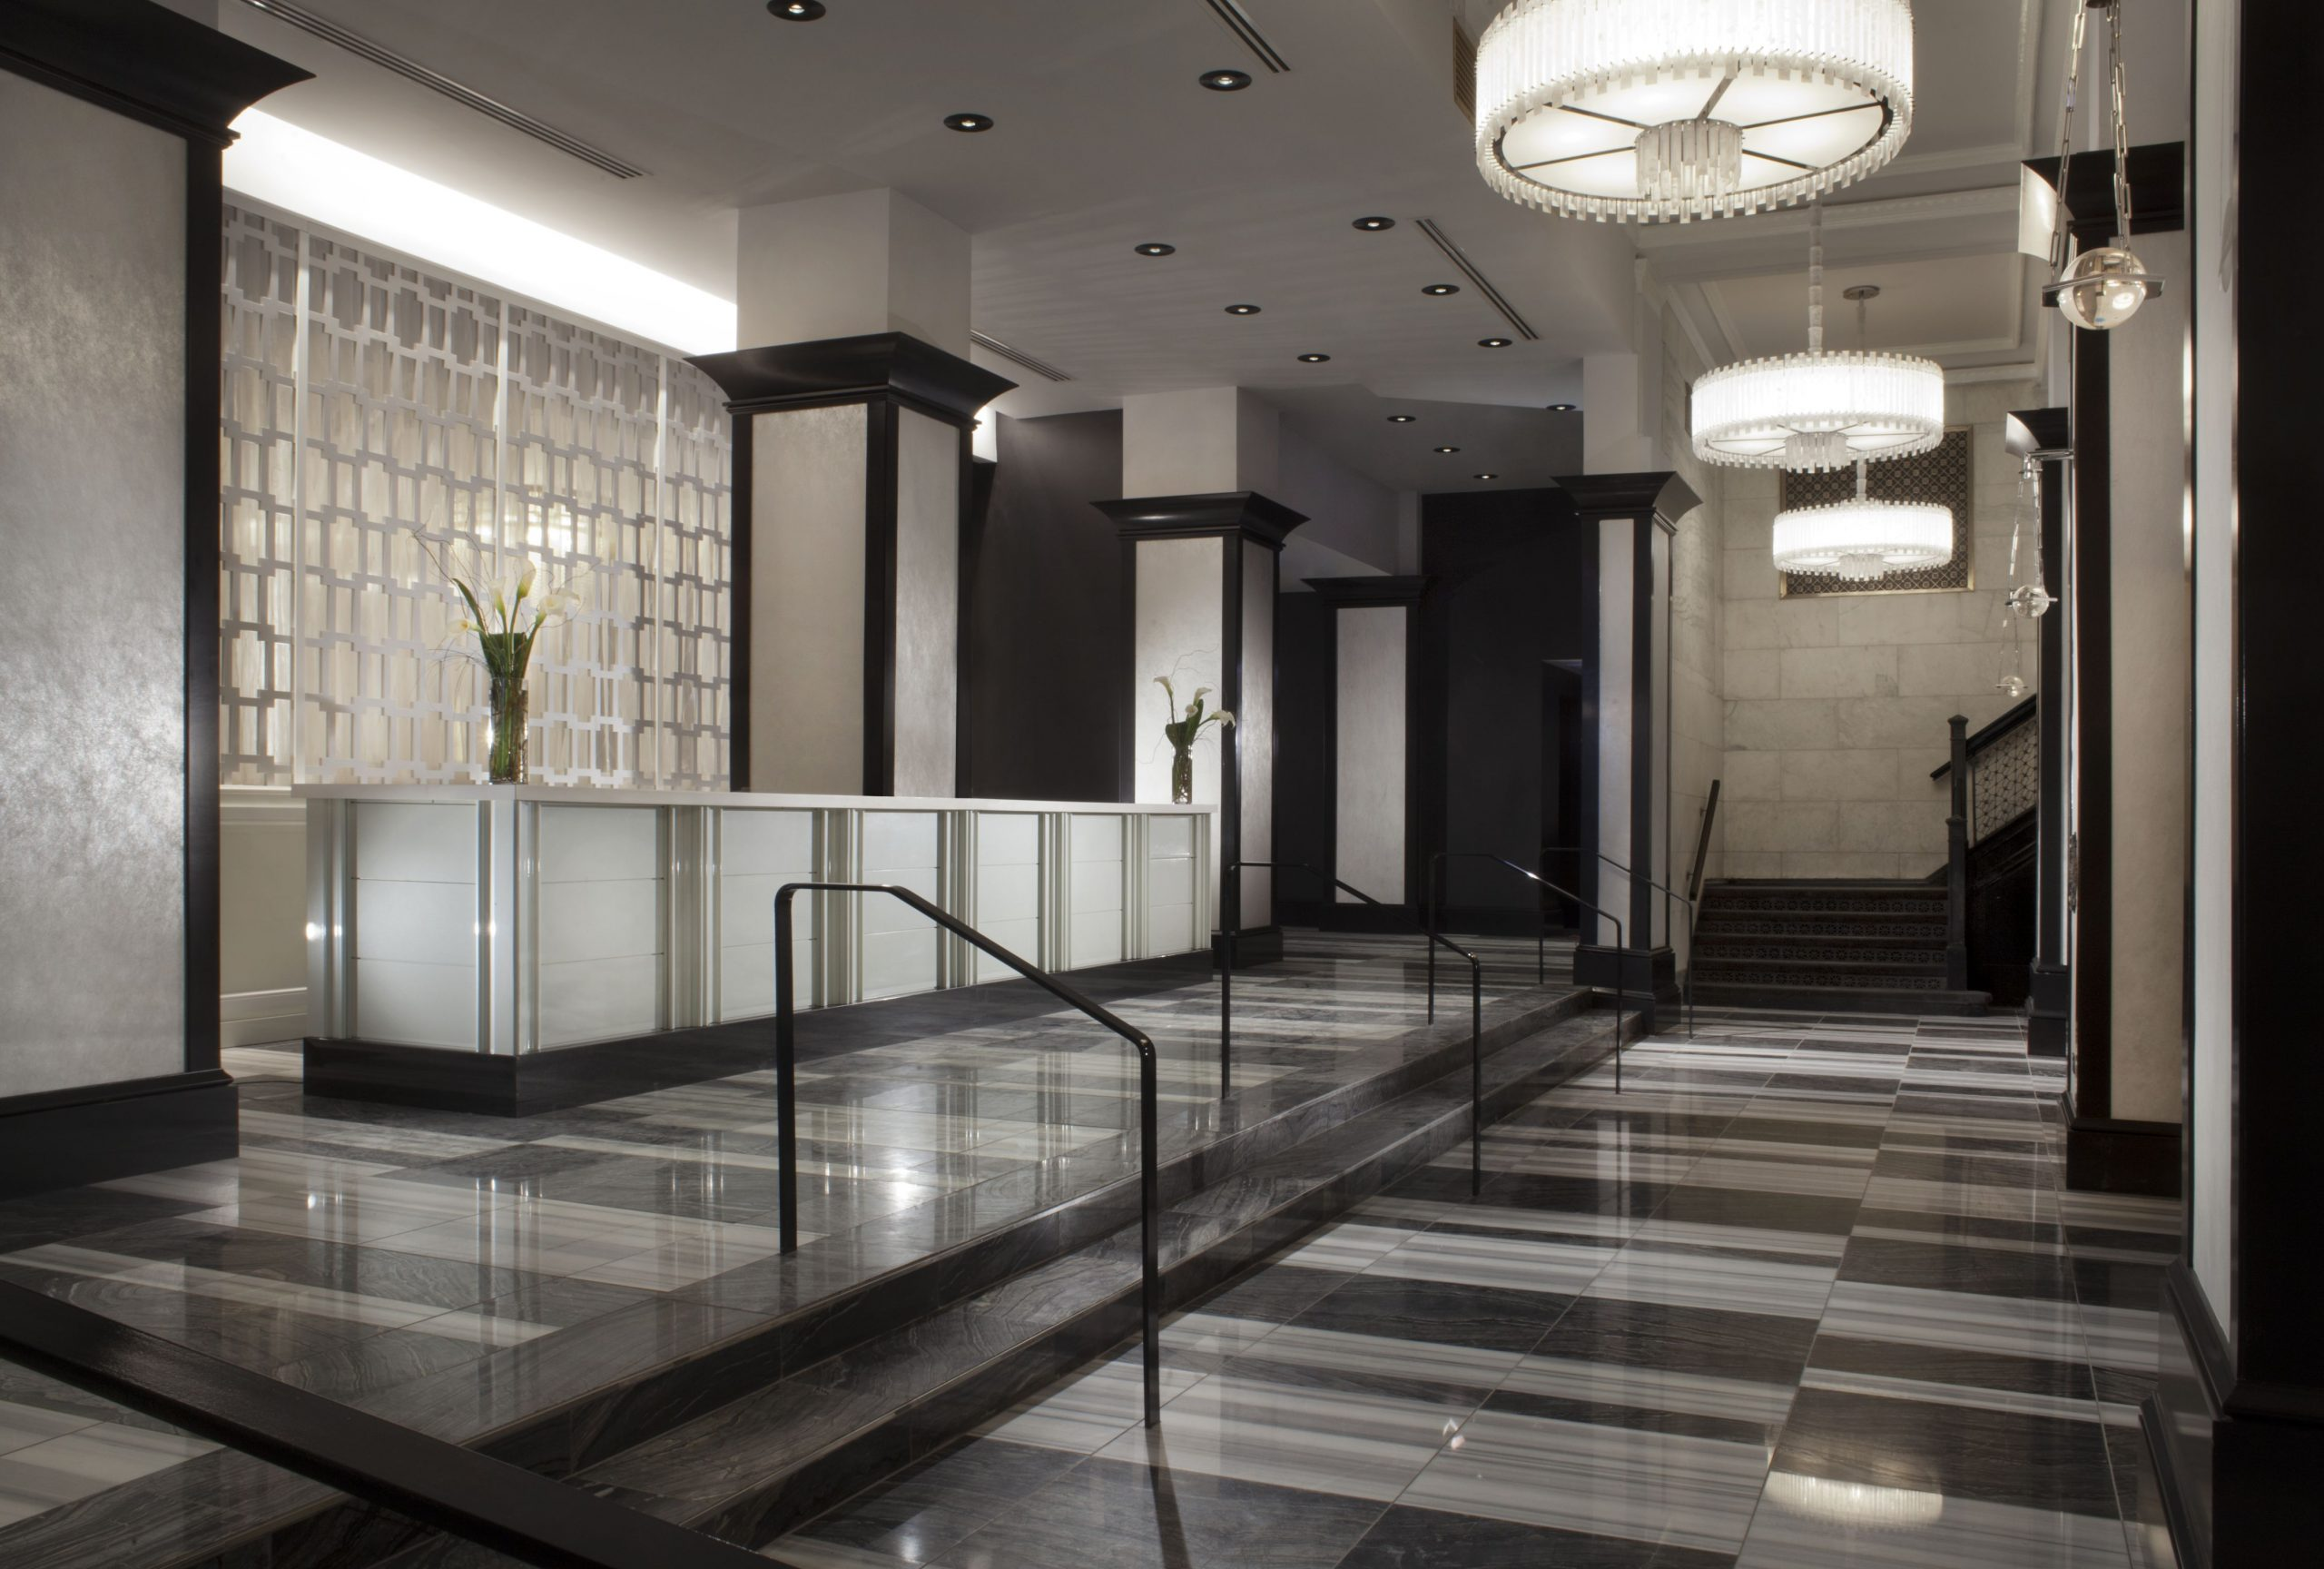 Newly Renovated Silversmith Hotel Teams Up With OpenKey For A High-Tech Guest Experience